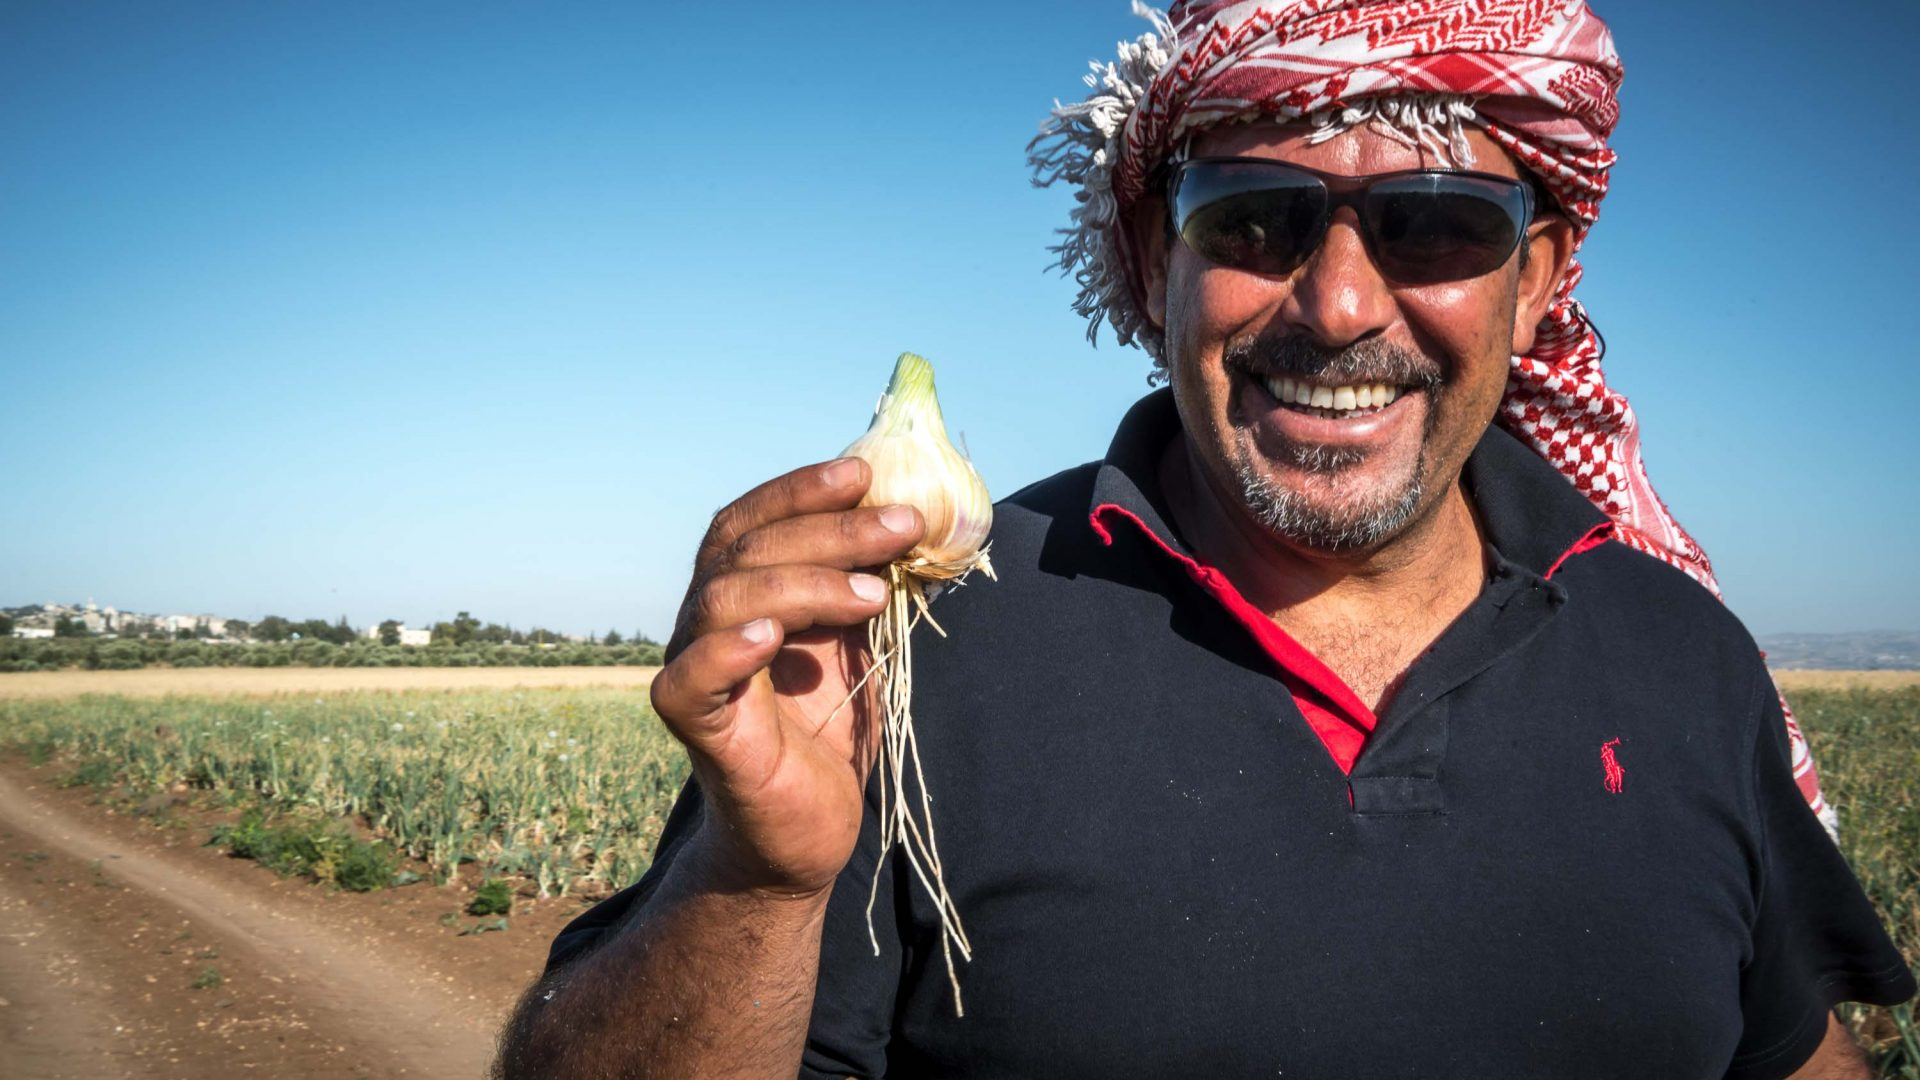 Guide Ahmed Al Omari shows off an onion bulb found while foraging around Umm Qais.